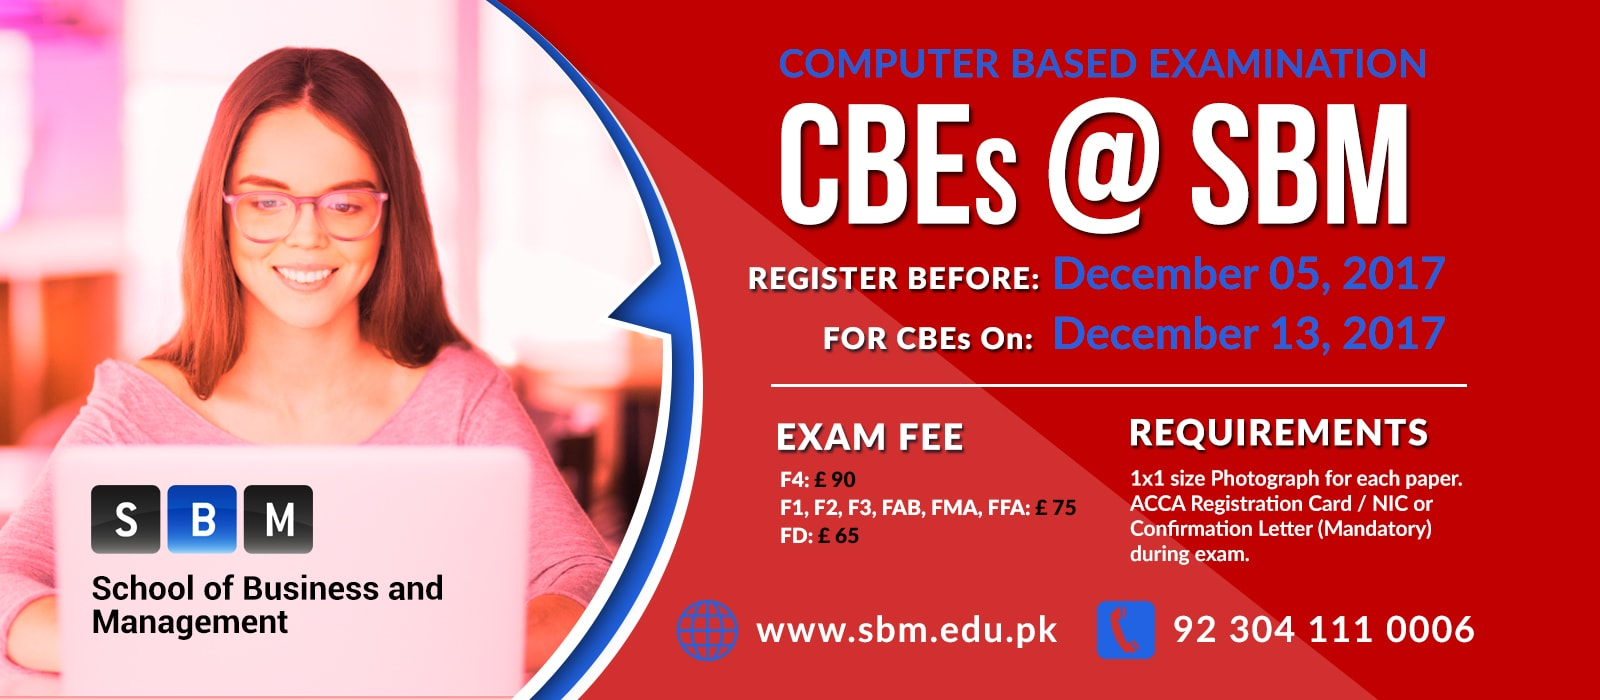 Register before 5th Dec for CBE exam on 13th Dec, 2017